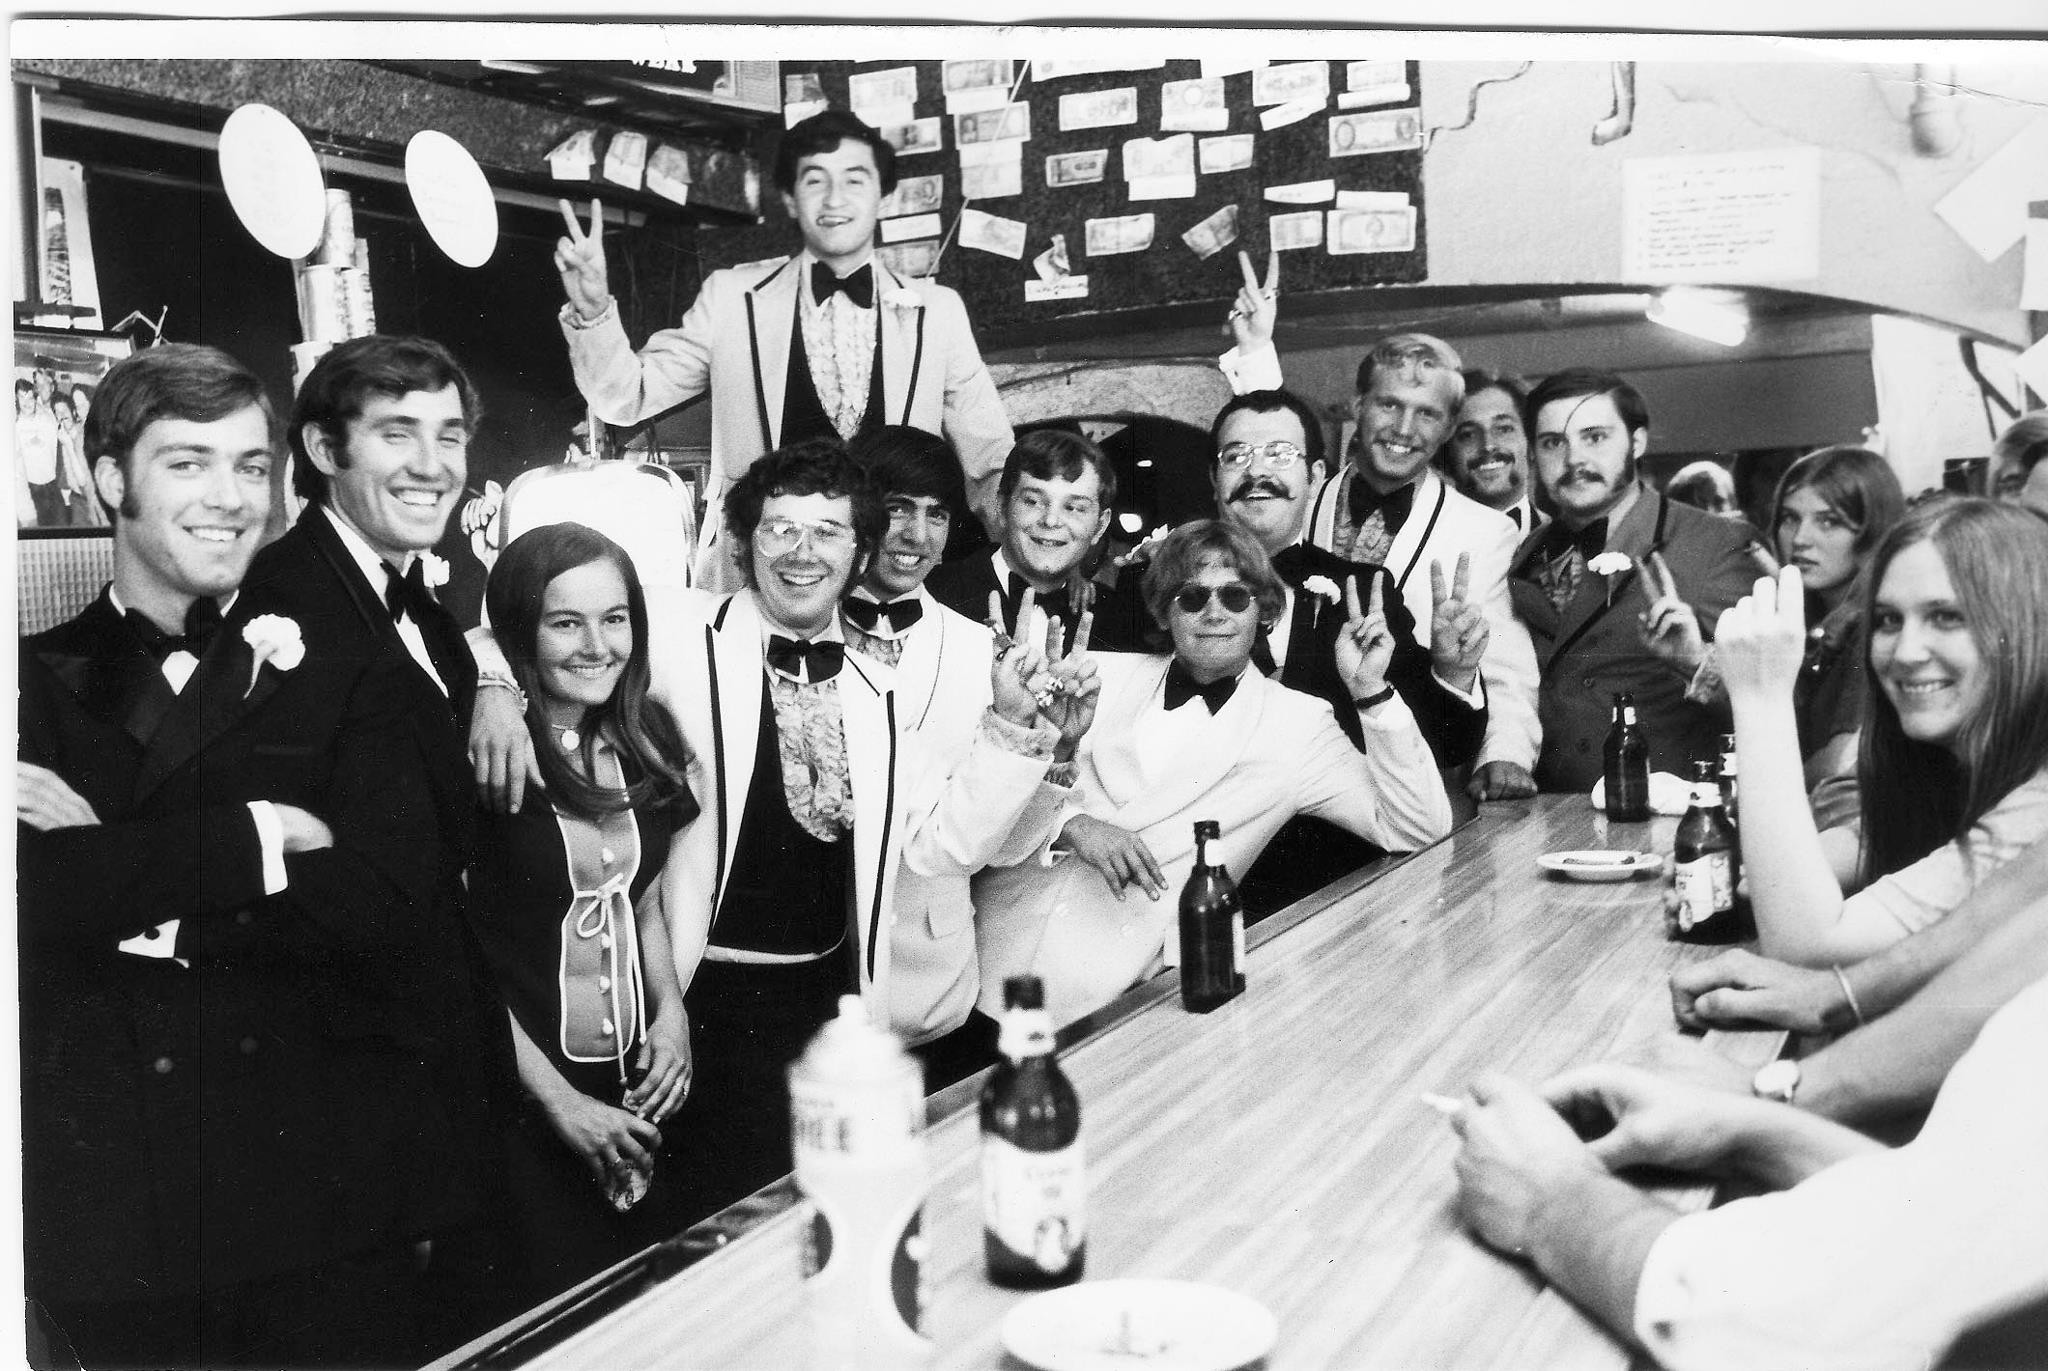 Chuck Morris and friends at The Sink for formal night. Circa 1968